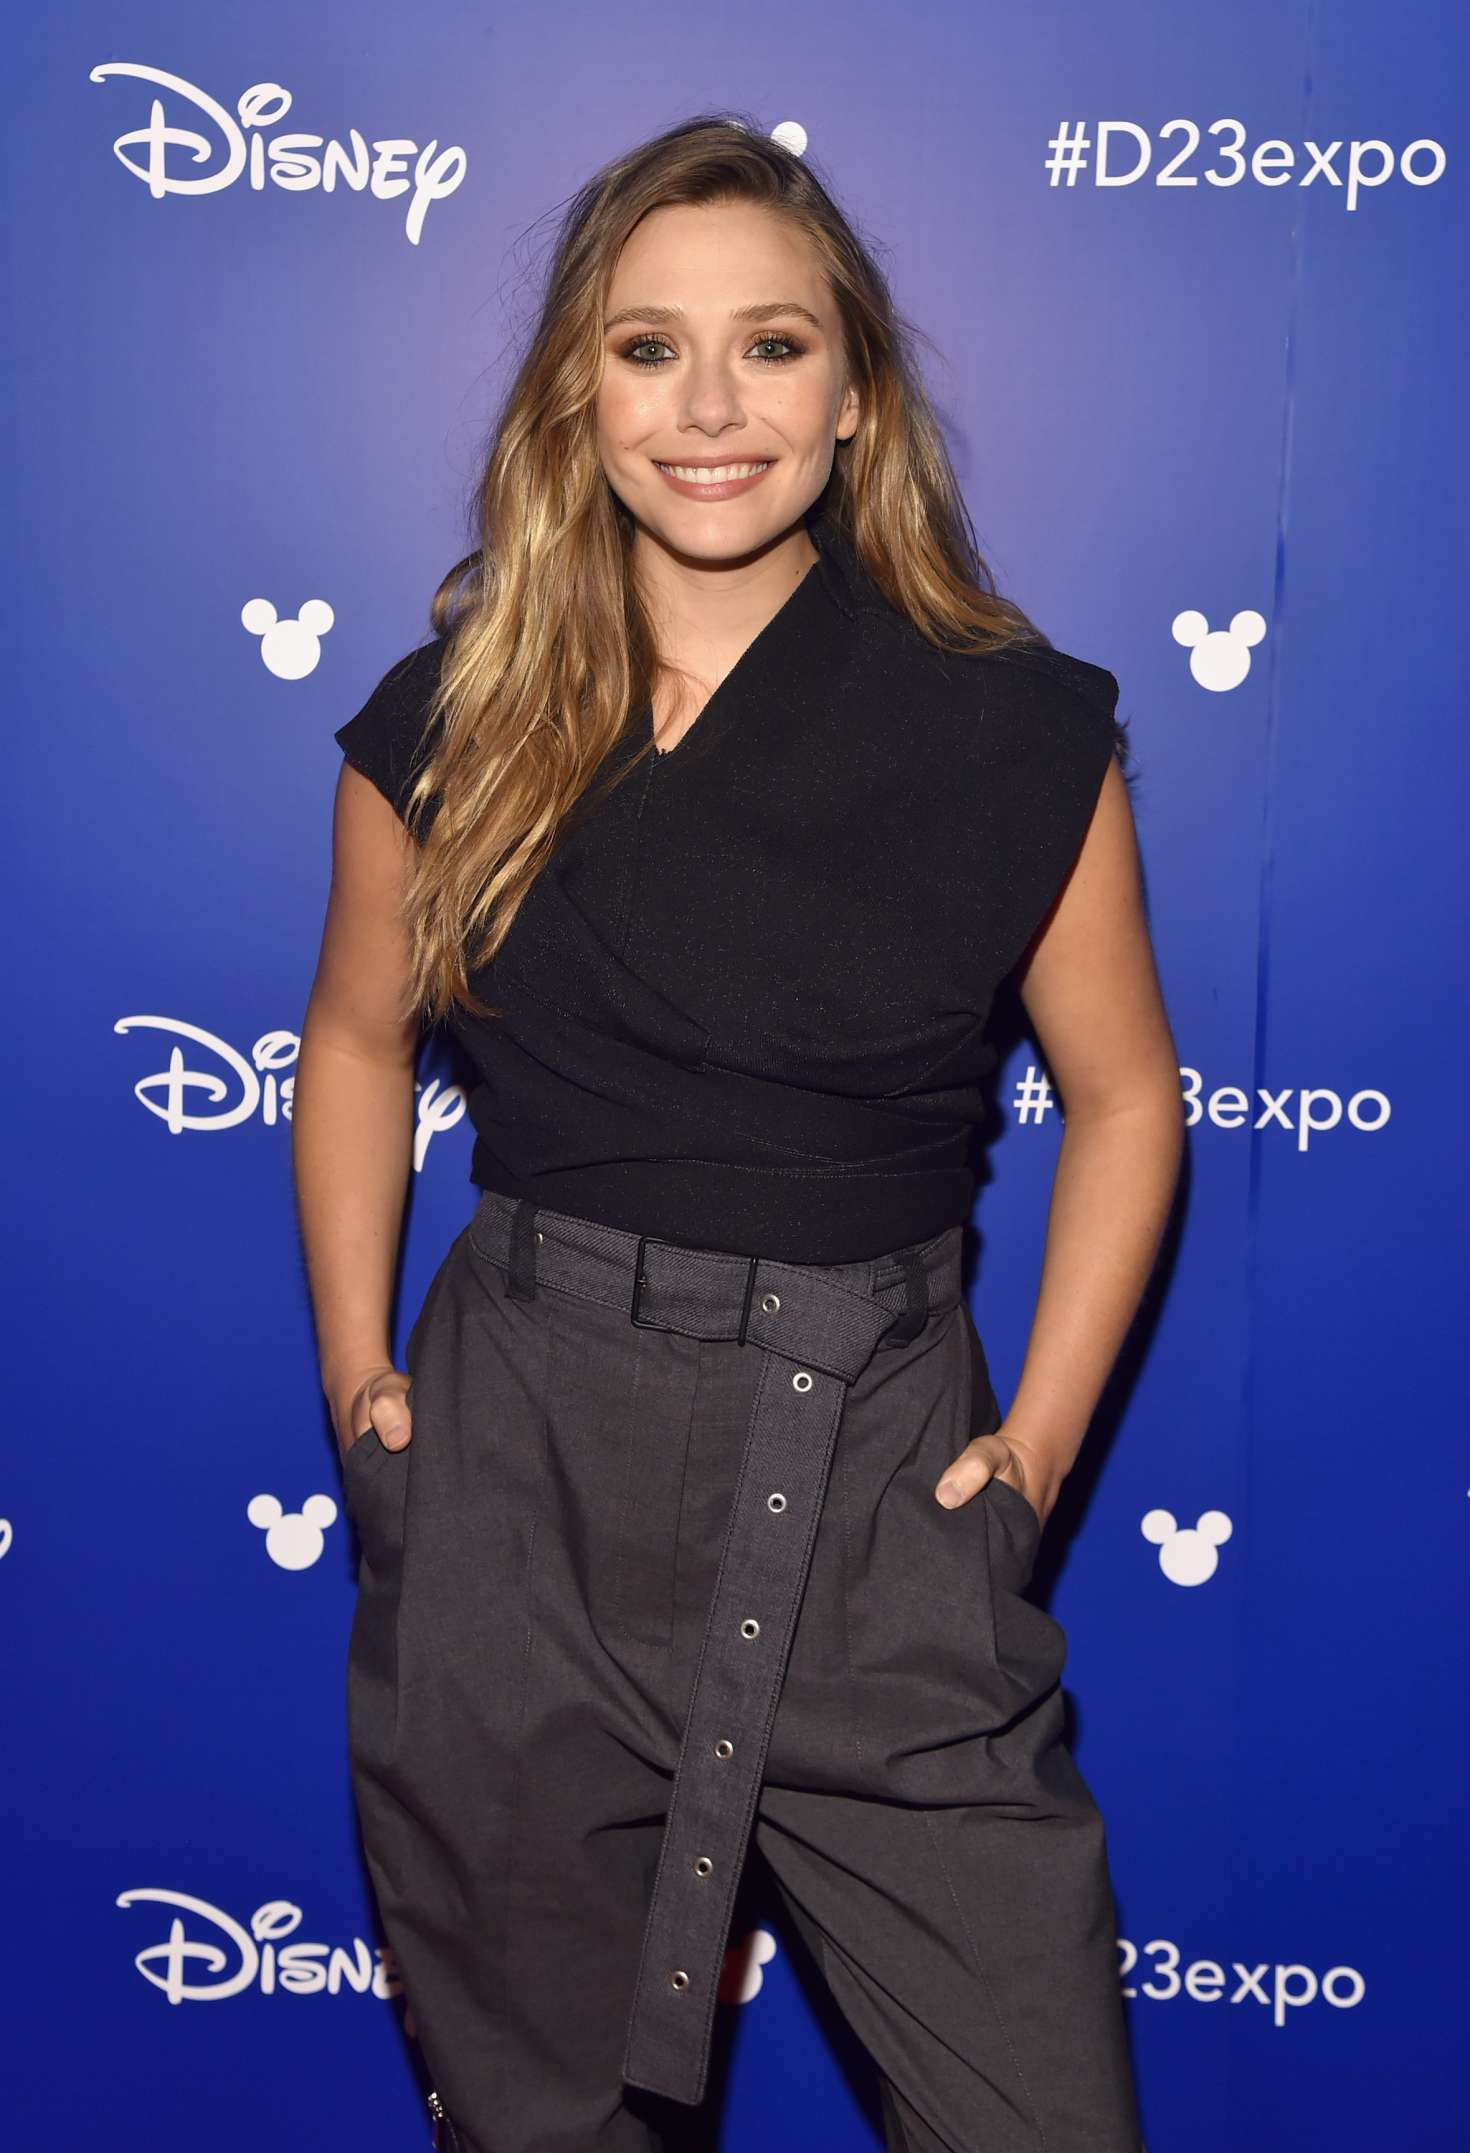 Elizabeth Olsen Disneys D23 EXPO 2017 in Anaheim  01 1470x2153